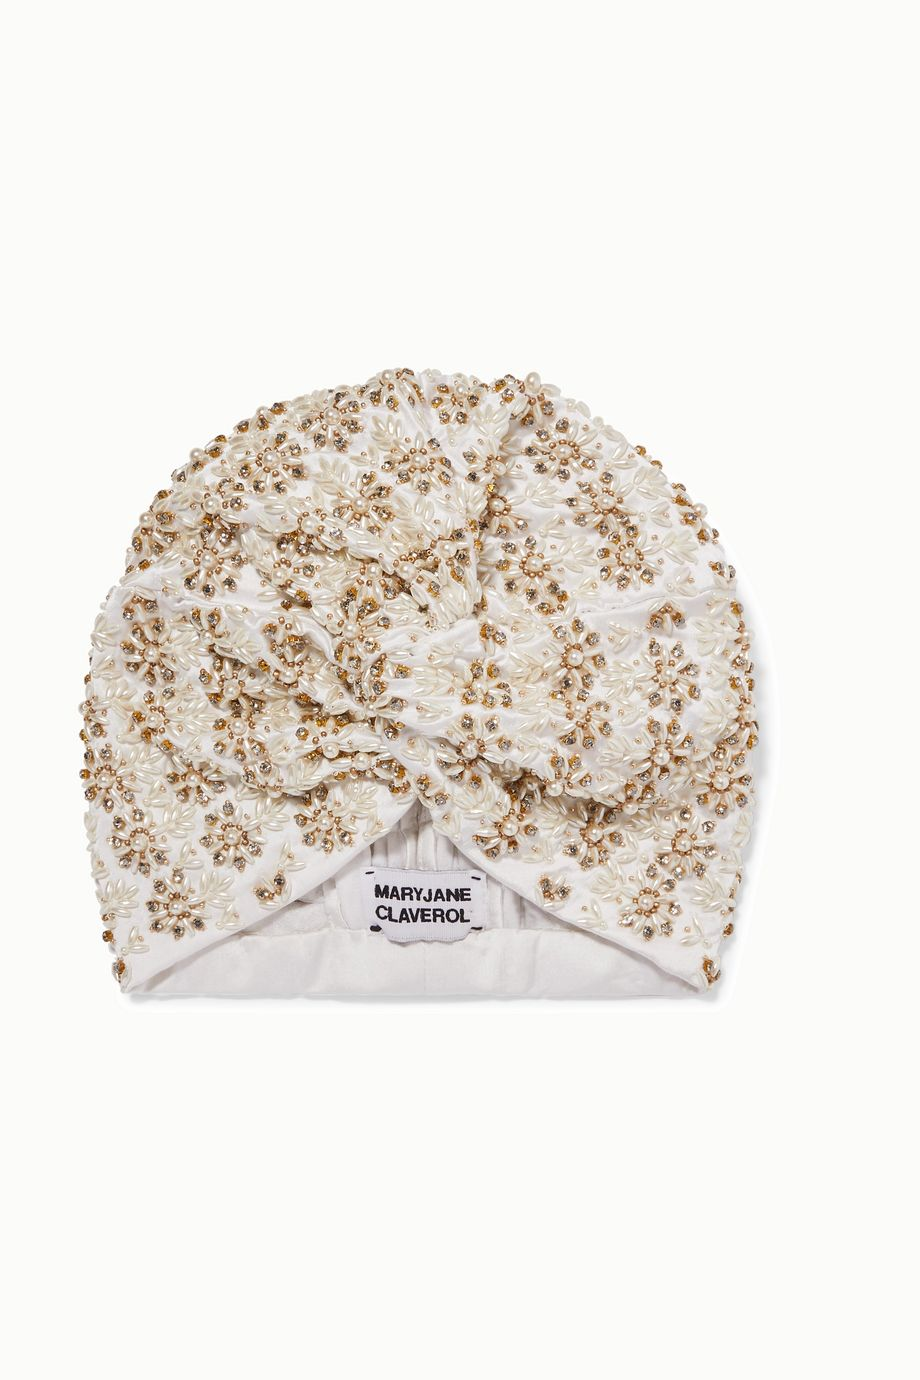 MaryJane Claverol Philo embellished stretch-crepe turban